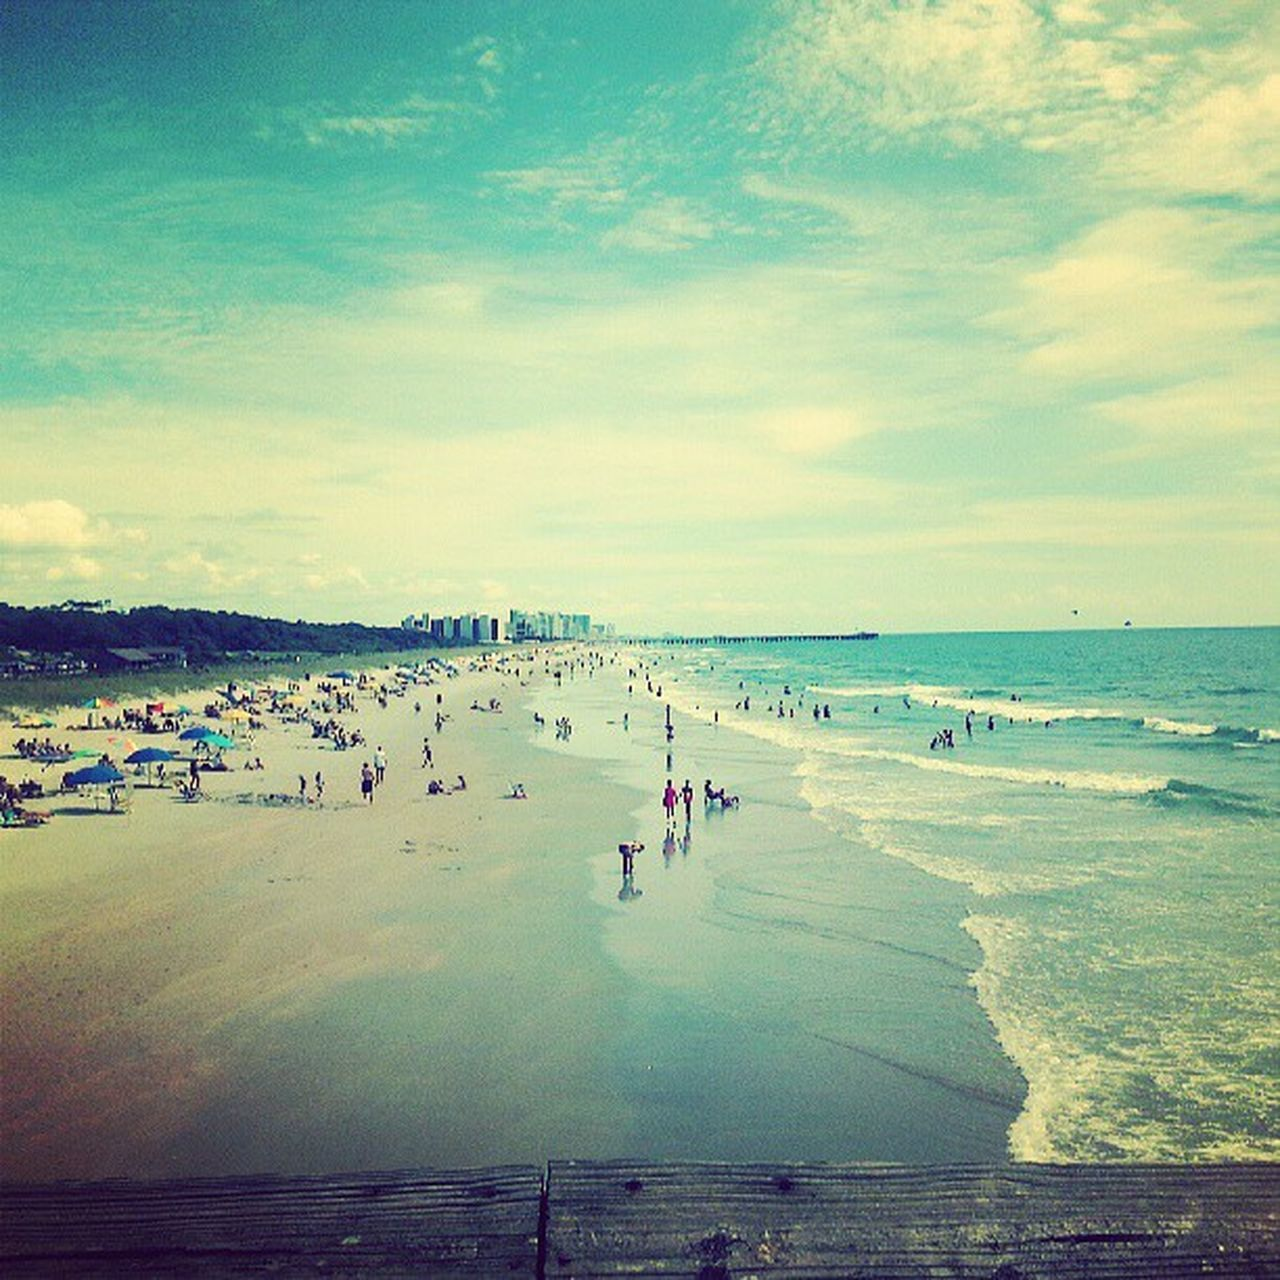 beach, sea, water, vacations, large group of people, nature, sand, beauty in nature, horizon over water, sky, scenics, real people, leisure activity, outdoors, tranquil scene, lifestyles, day, men, enjoyment, tranquility, wave, women, weekend activities, cloud - sky, travel destinations, summer, people, adult